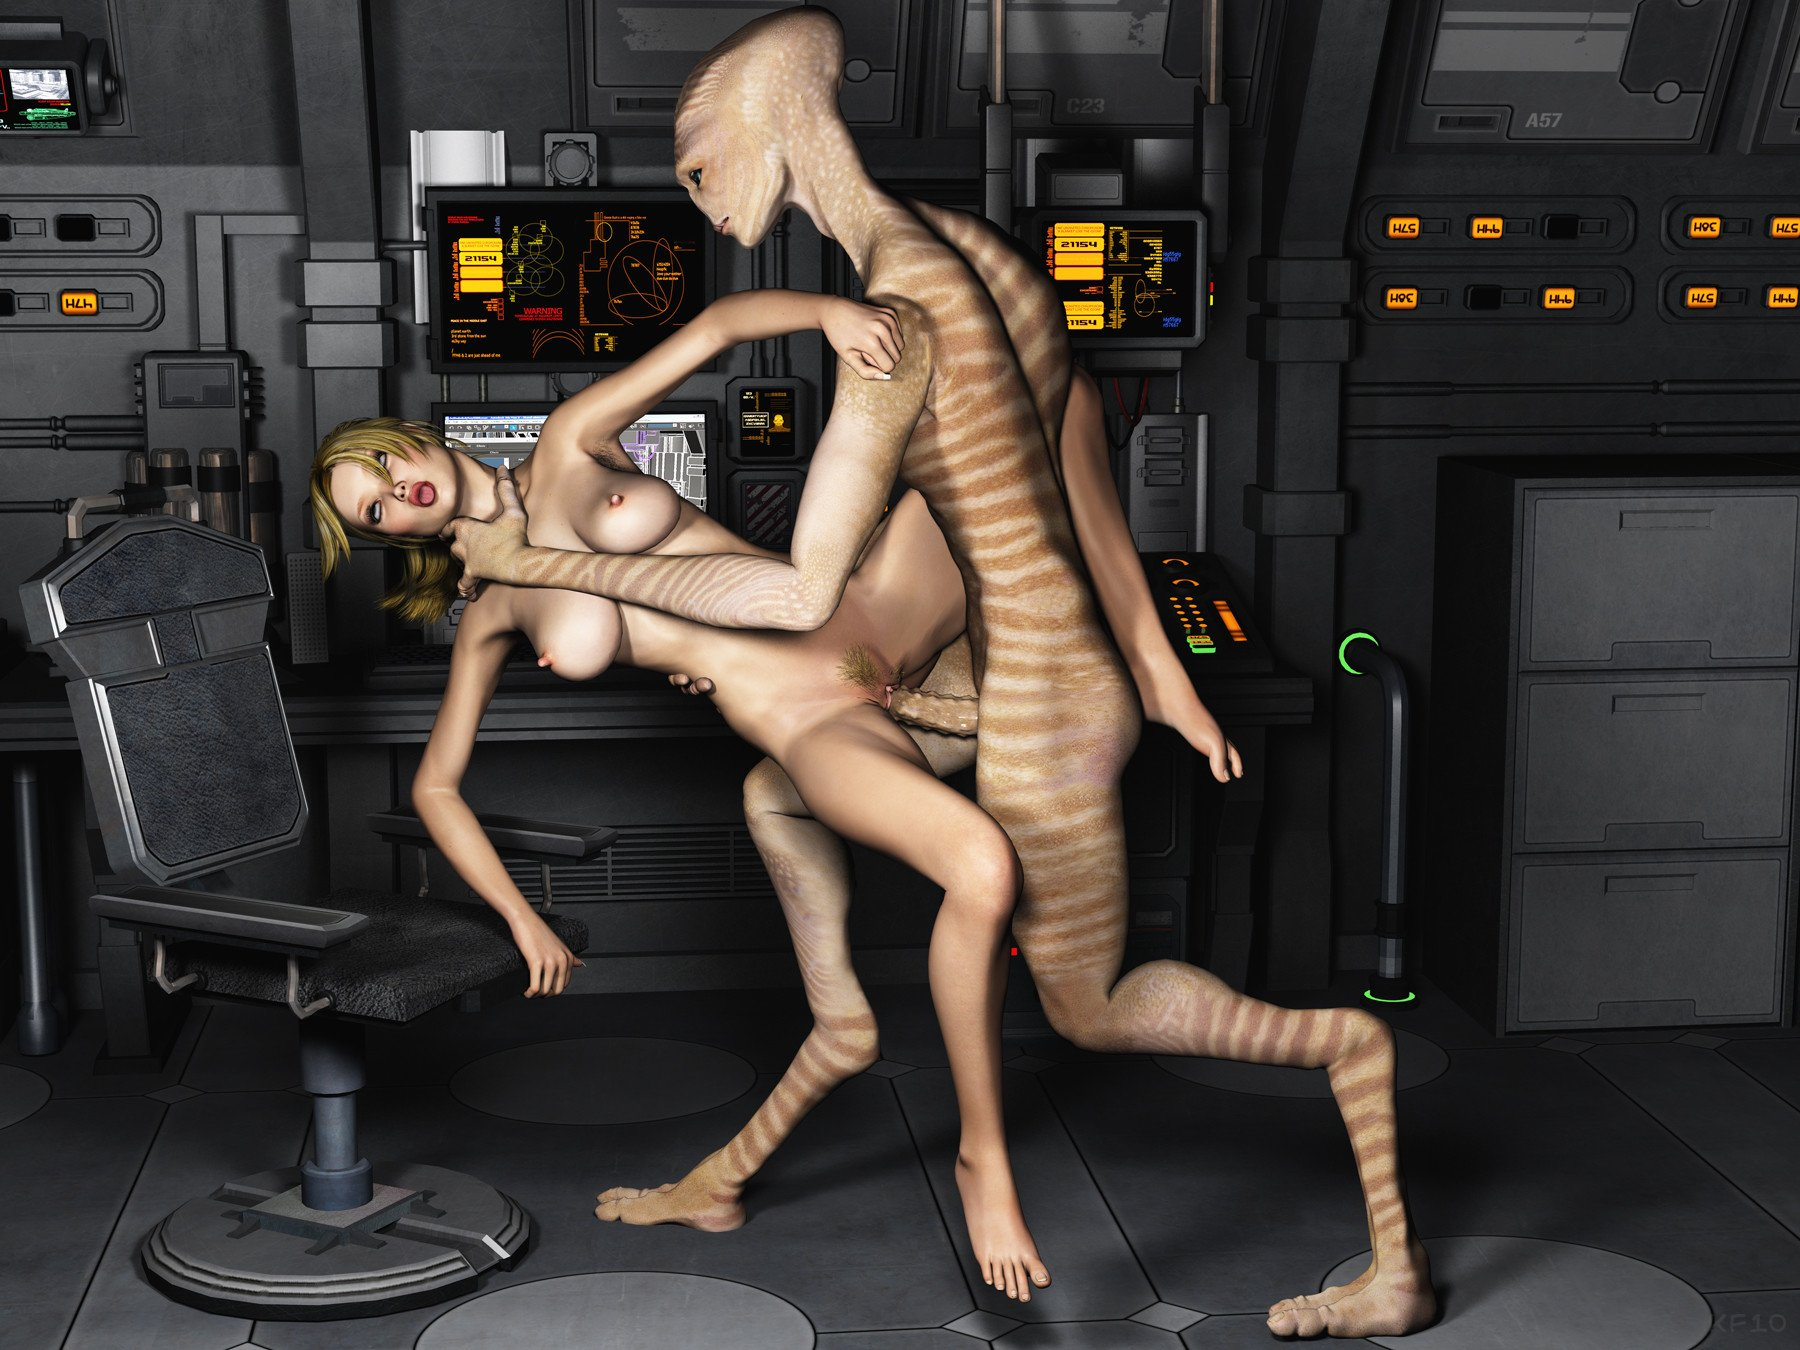 sci-fi-sex-xxx-game-s-e-x-girl